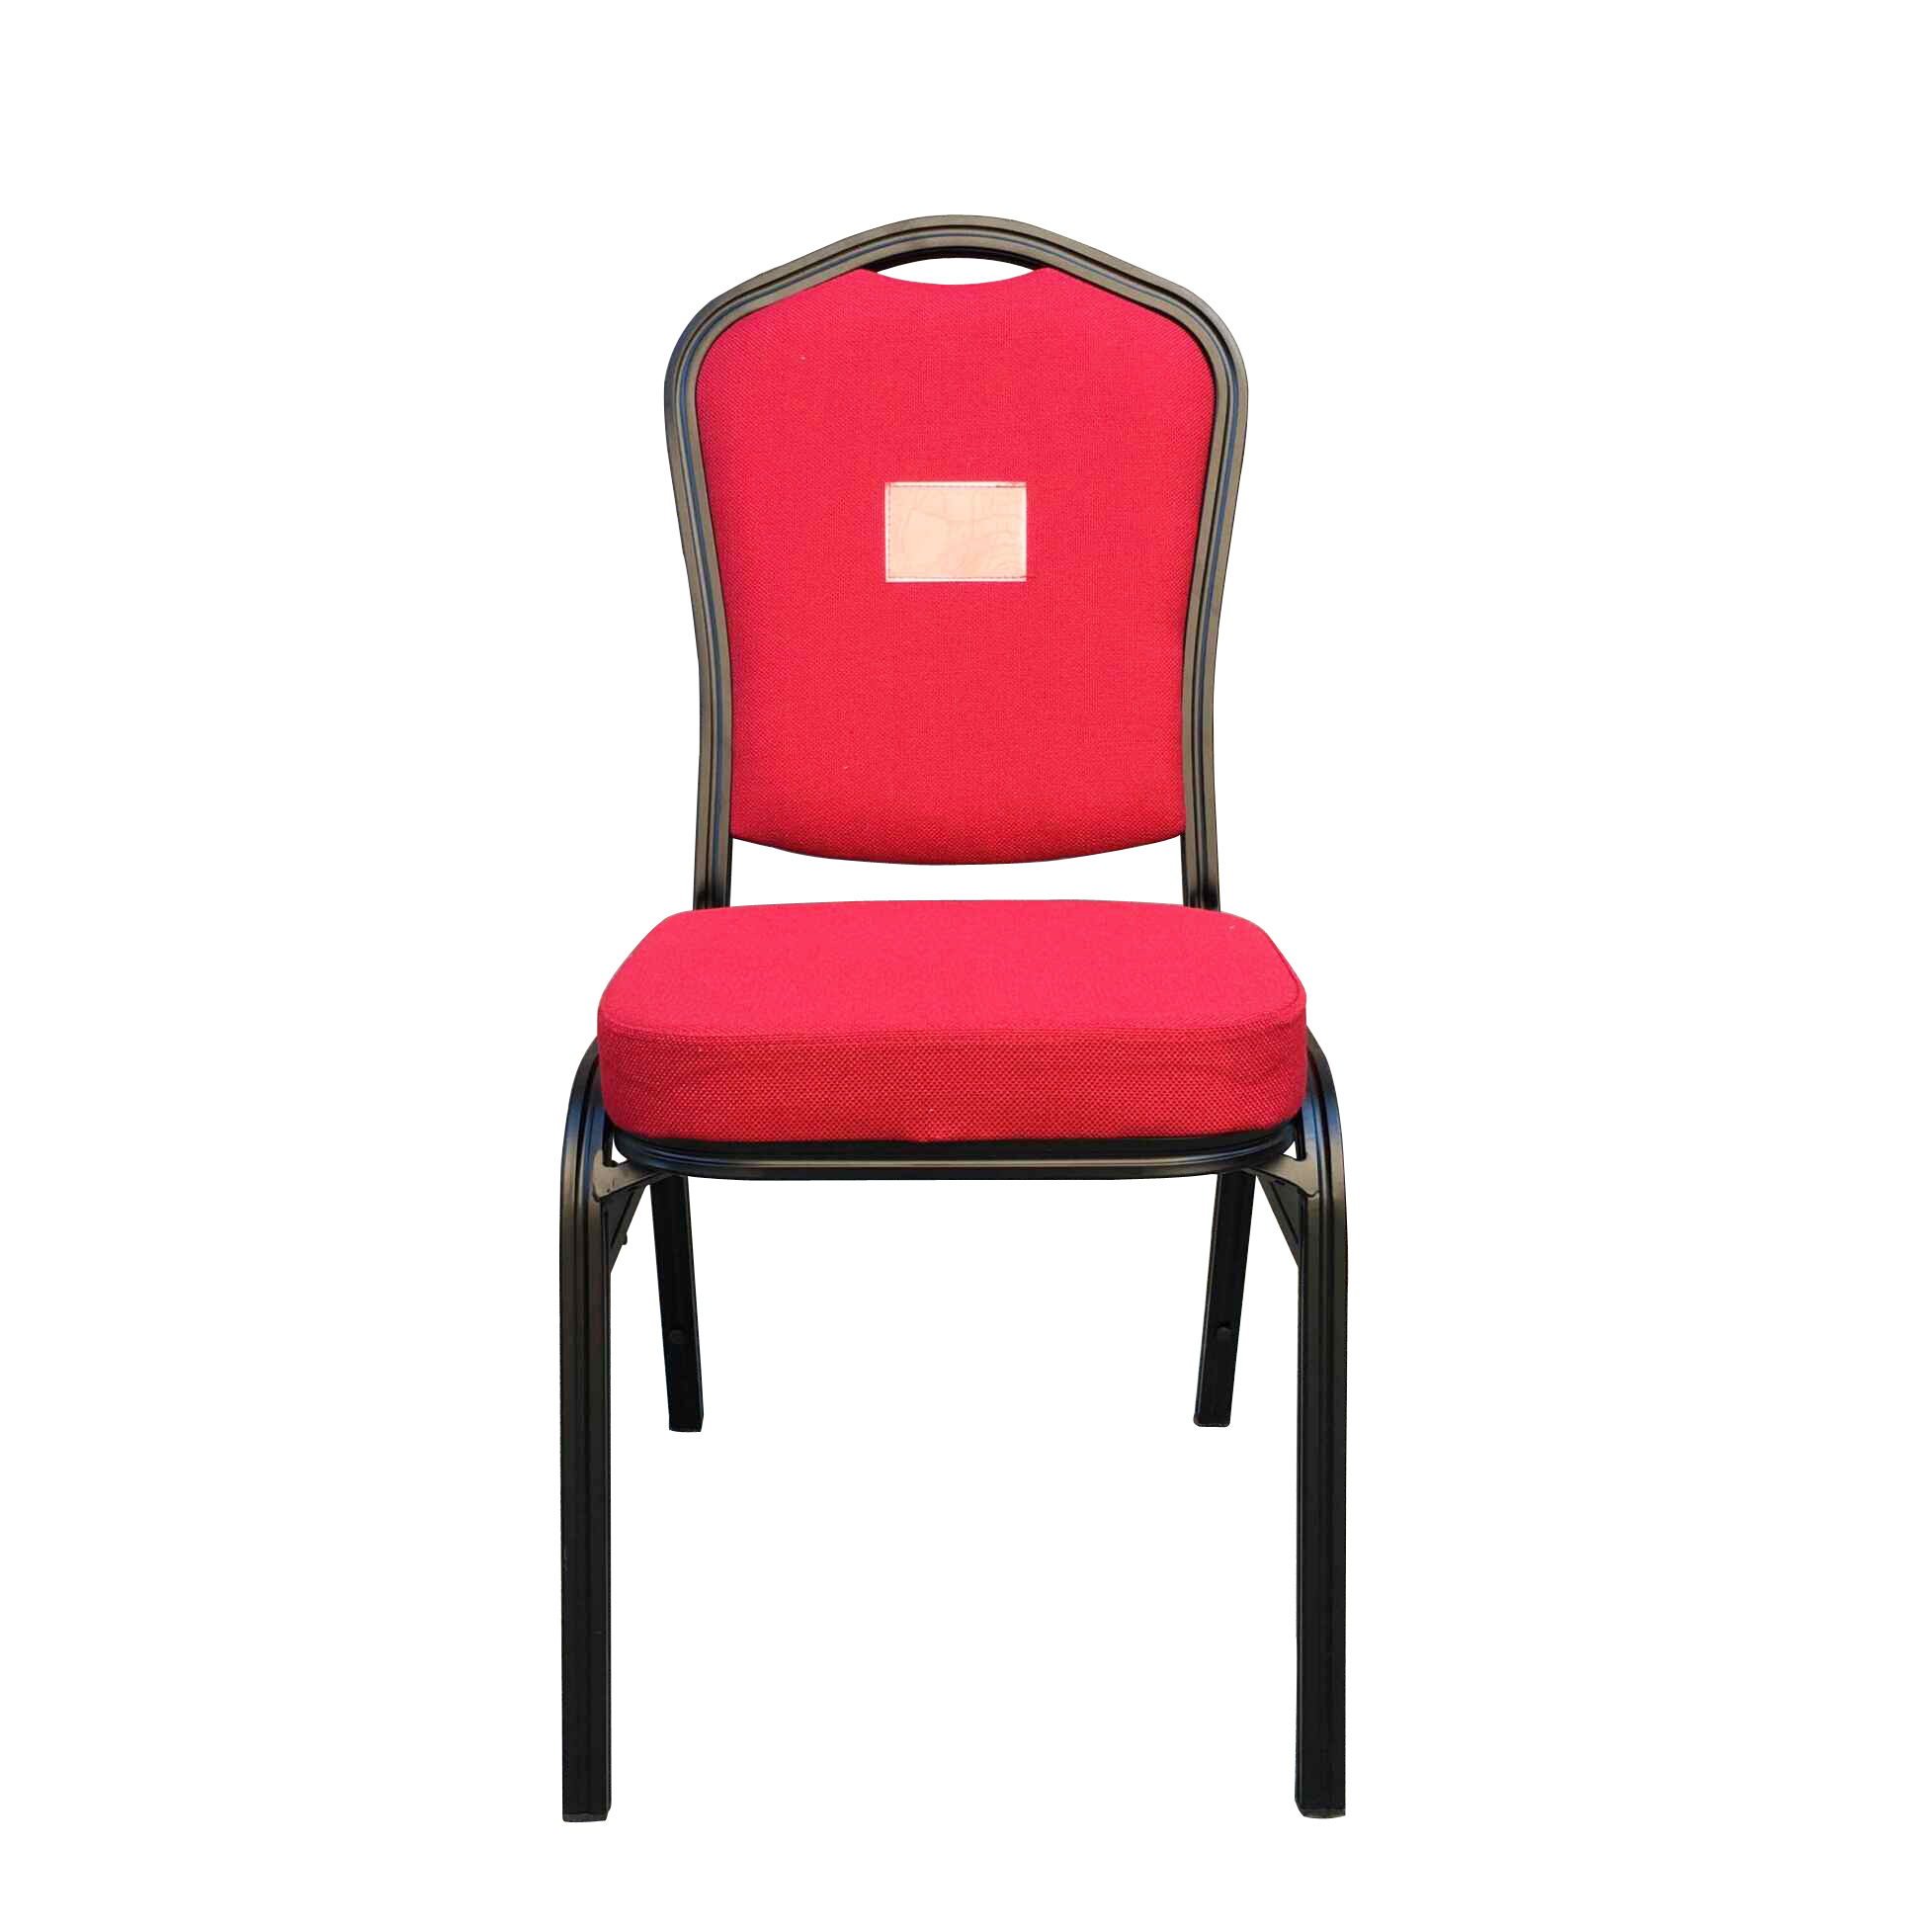 PriceList for School Auditorium Chair -